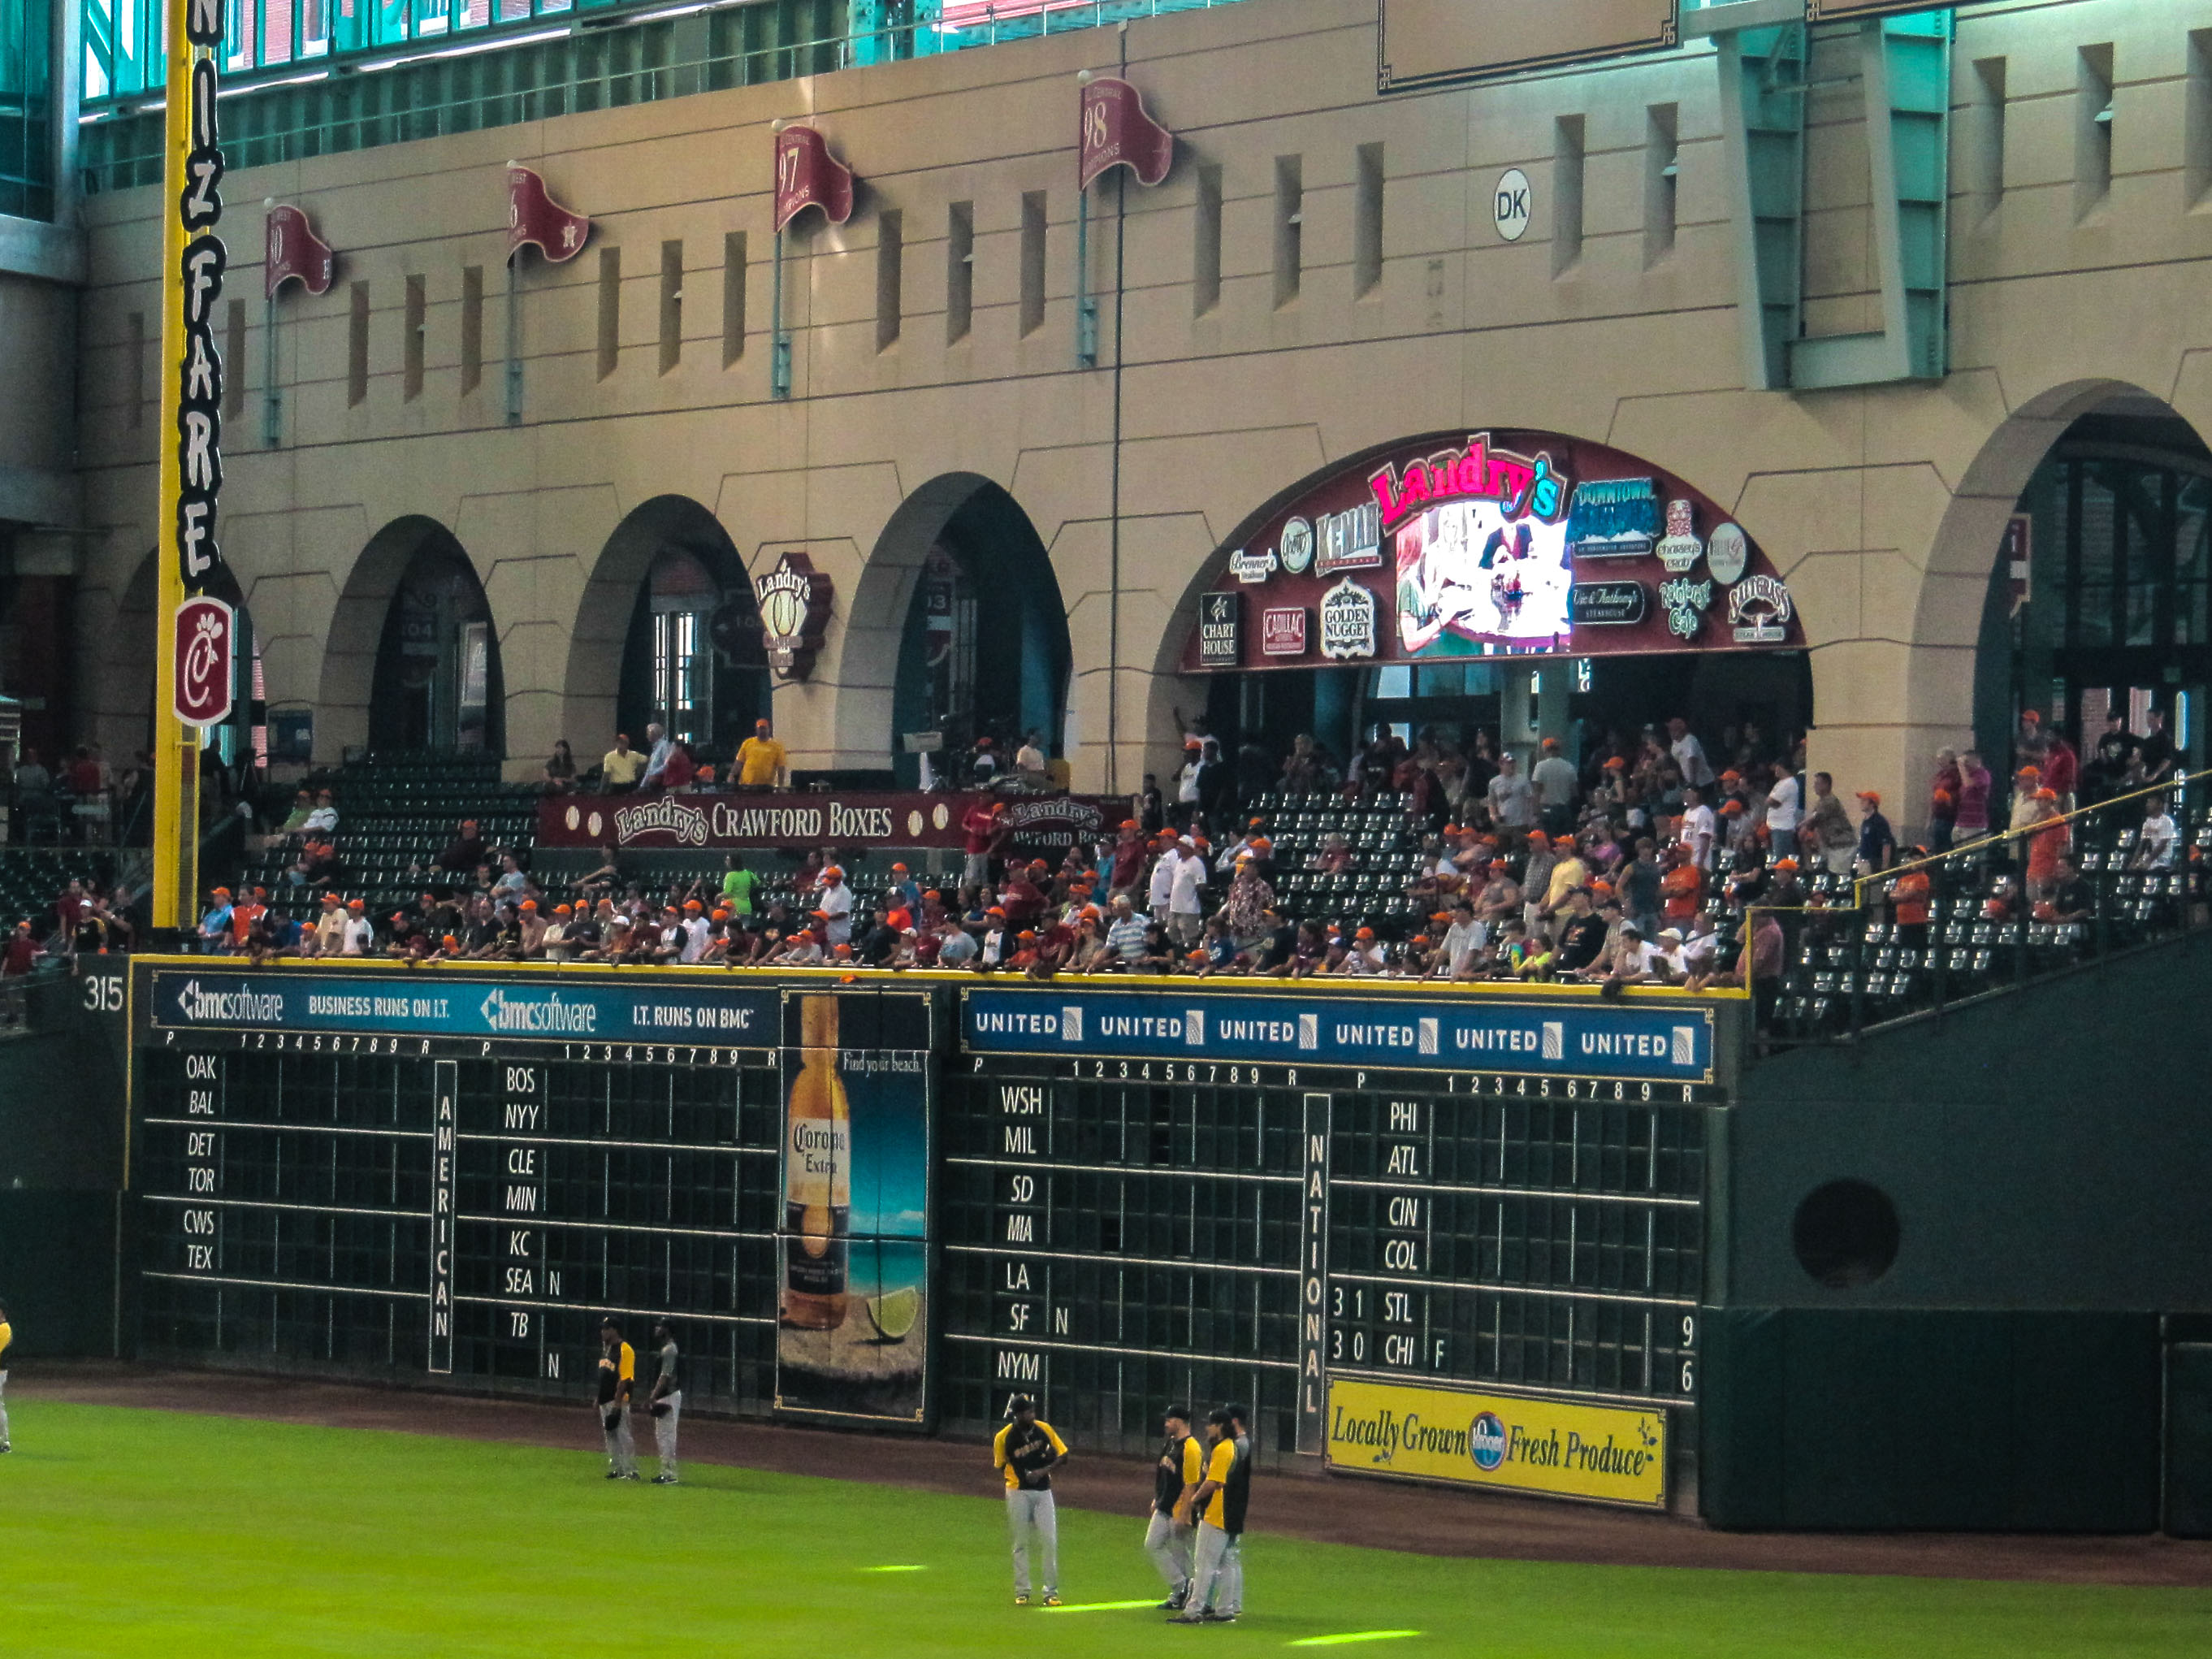 Crawford Boxes During Batting Practice at Minute Maid Park